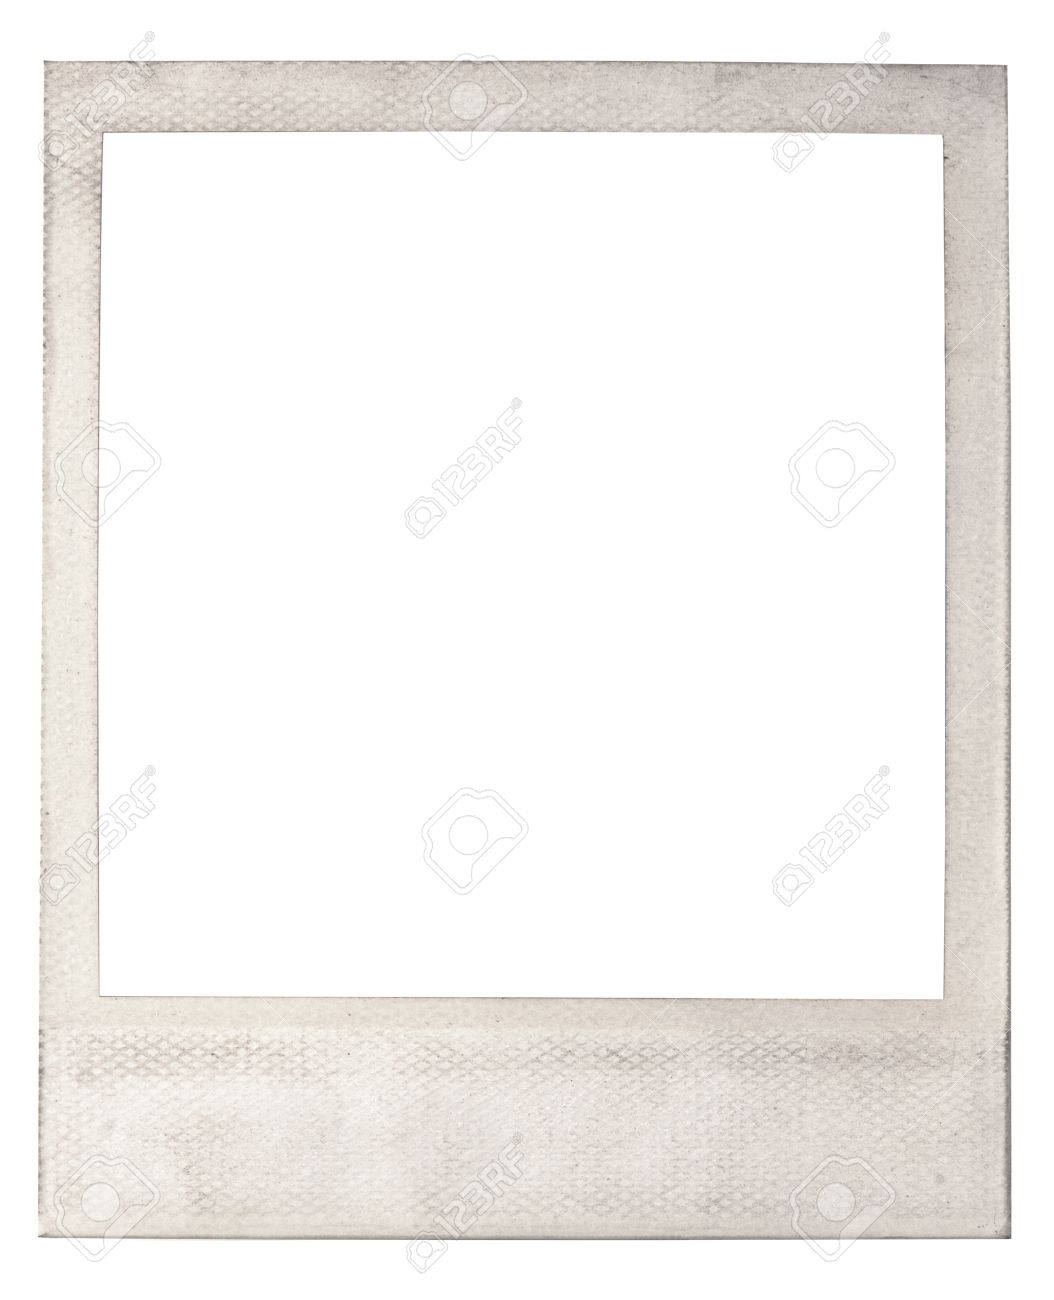 old blank instant photo frame with a light colored dirty discolored frame isolate on white with